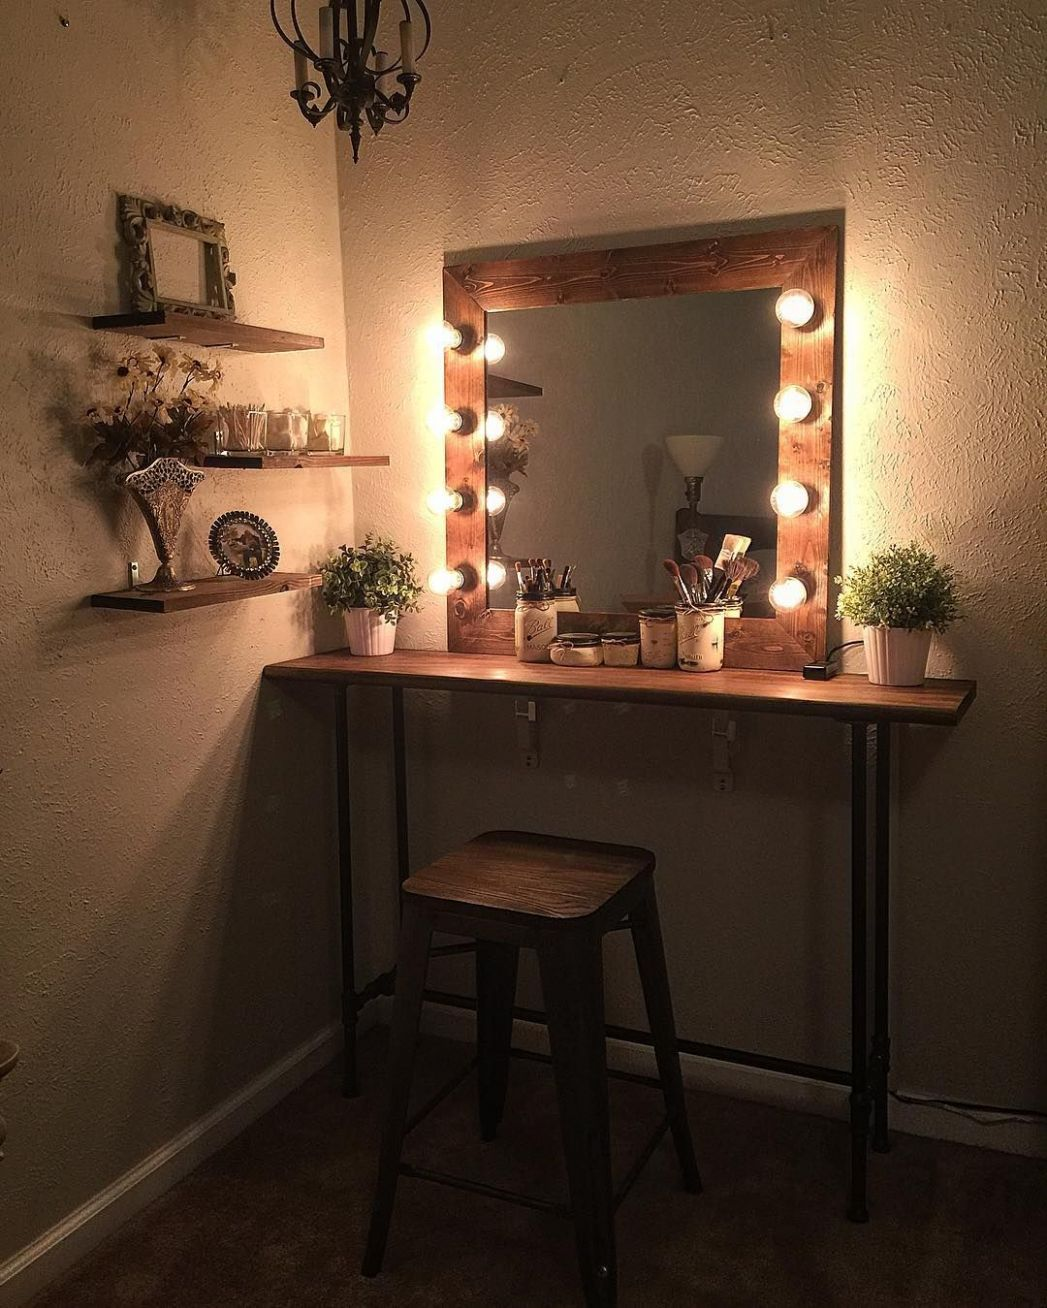 Cute easy simple DIY wood rustic vanity mirror with hollywood ..